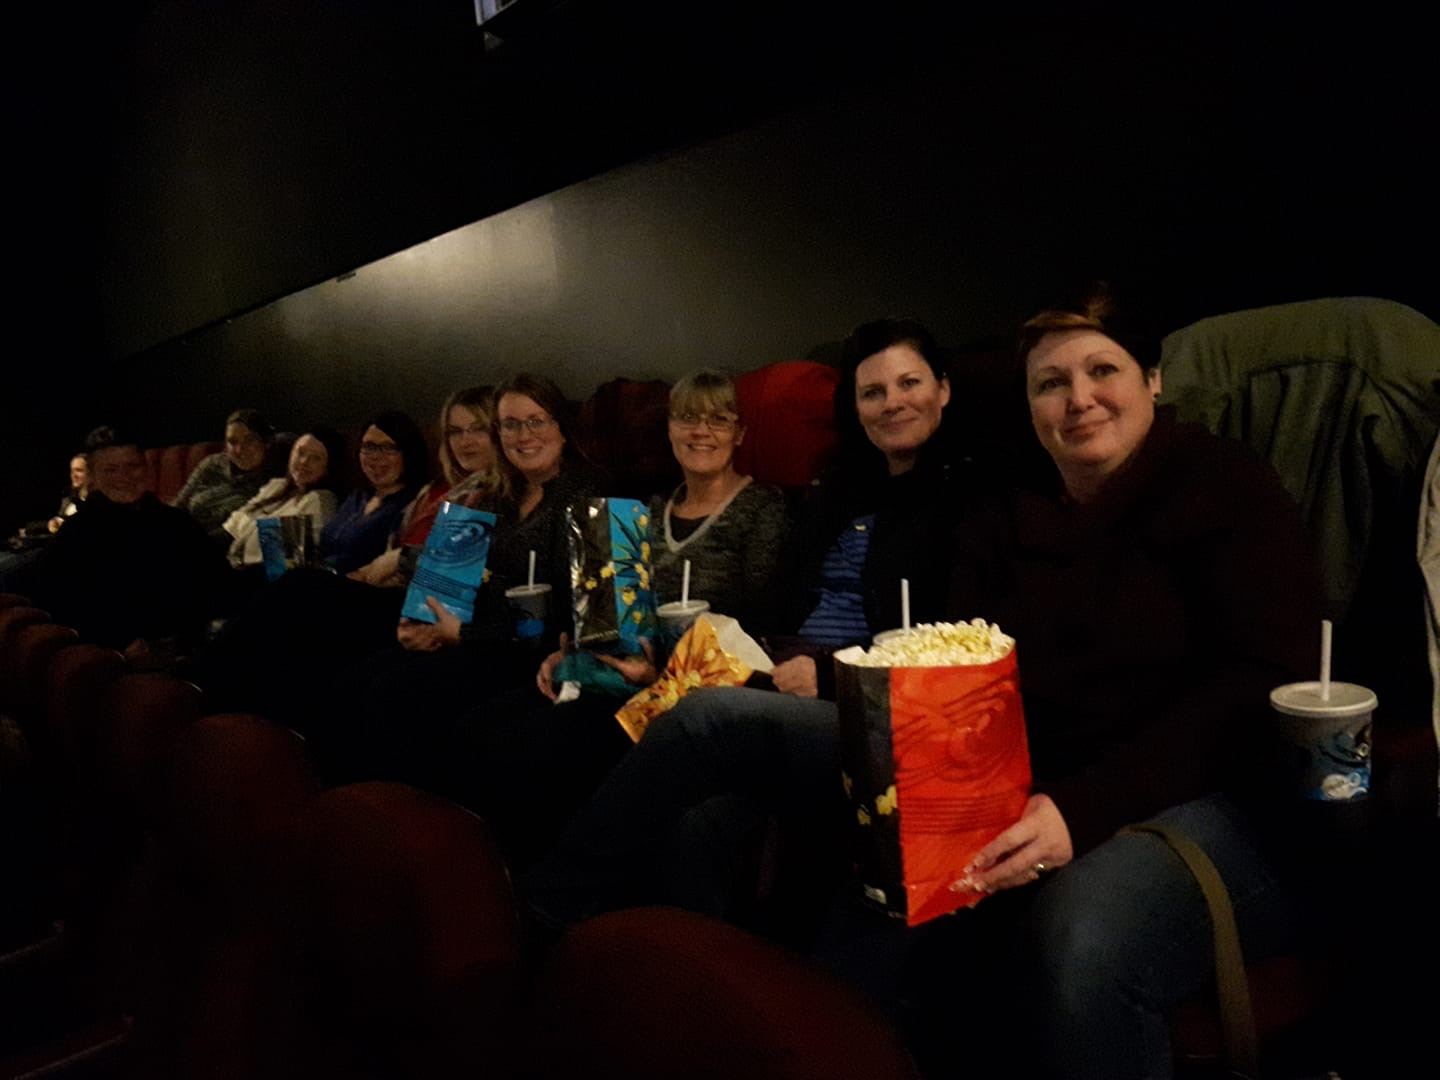 Mum's Night Out (at the movies)